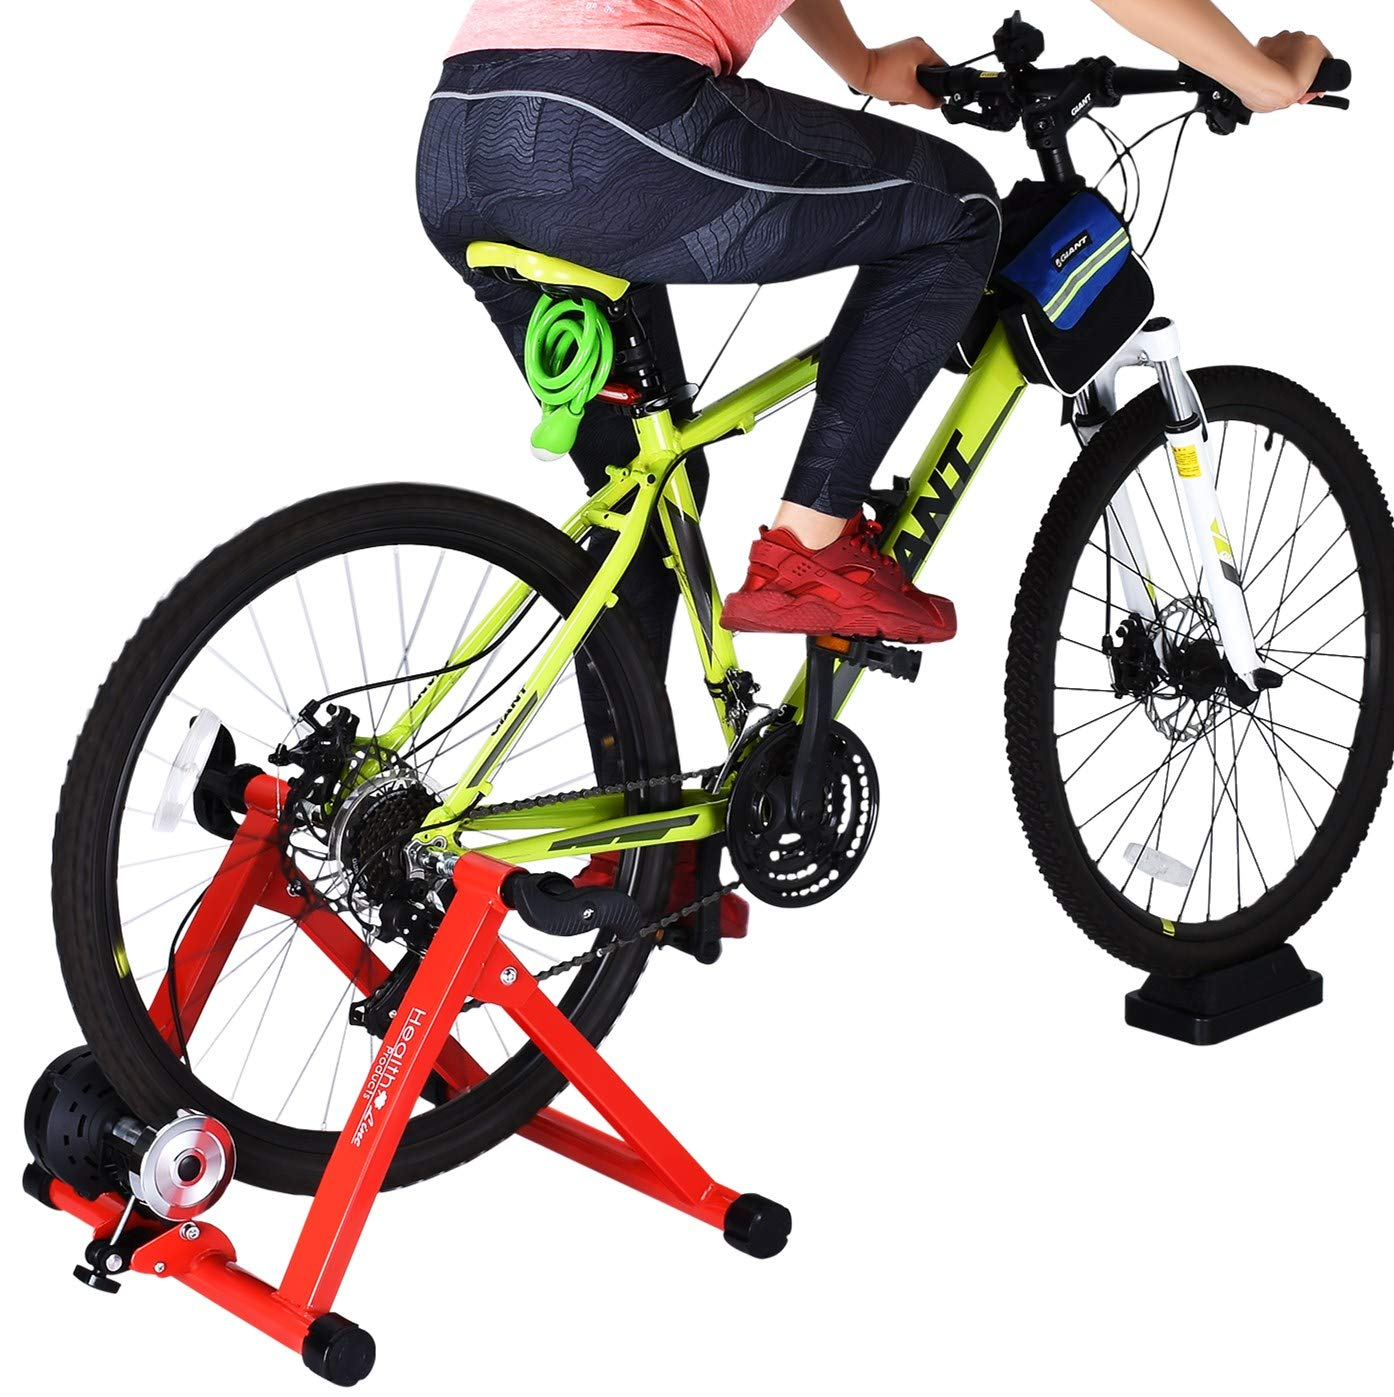 HEALTH LINE PRODUCT Indoor Cycle Trainer,Noise Reduction Super Quiet Bicycle Exercise Stand w Quick Release 8 Levels Resistance w Front Wheel Block